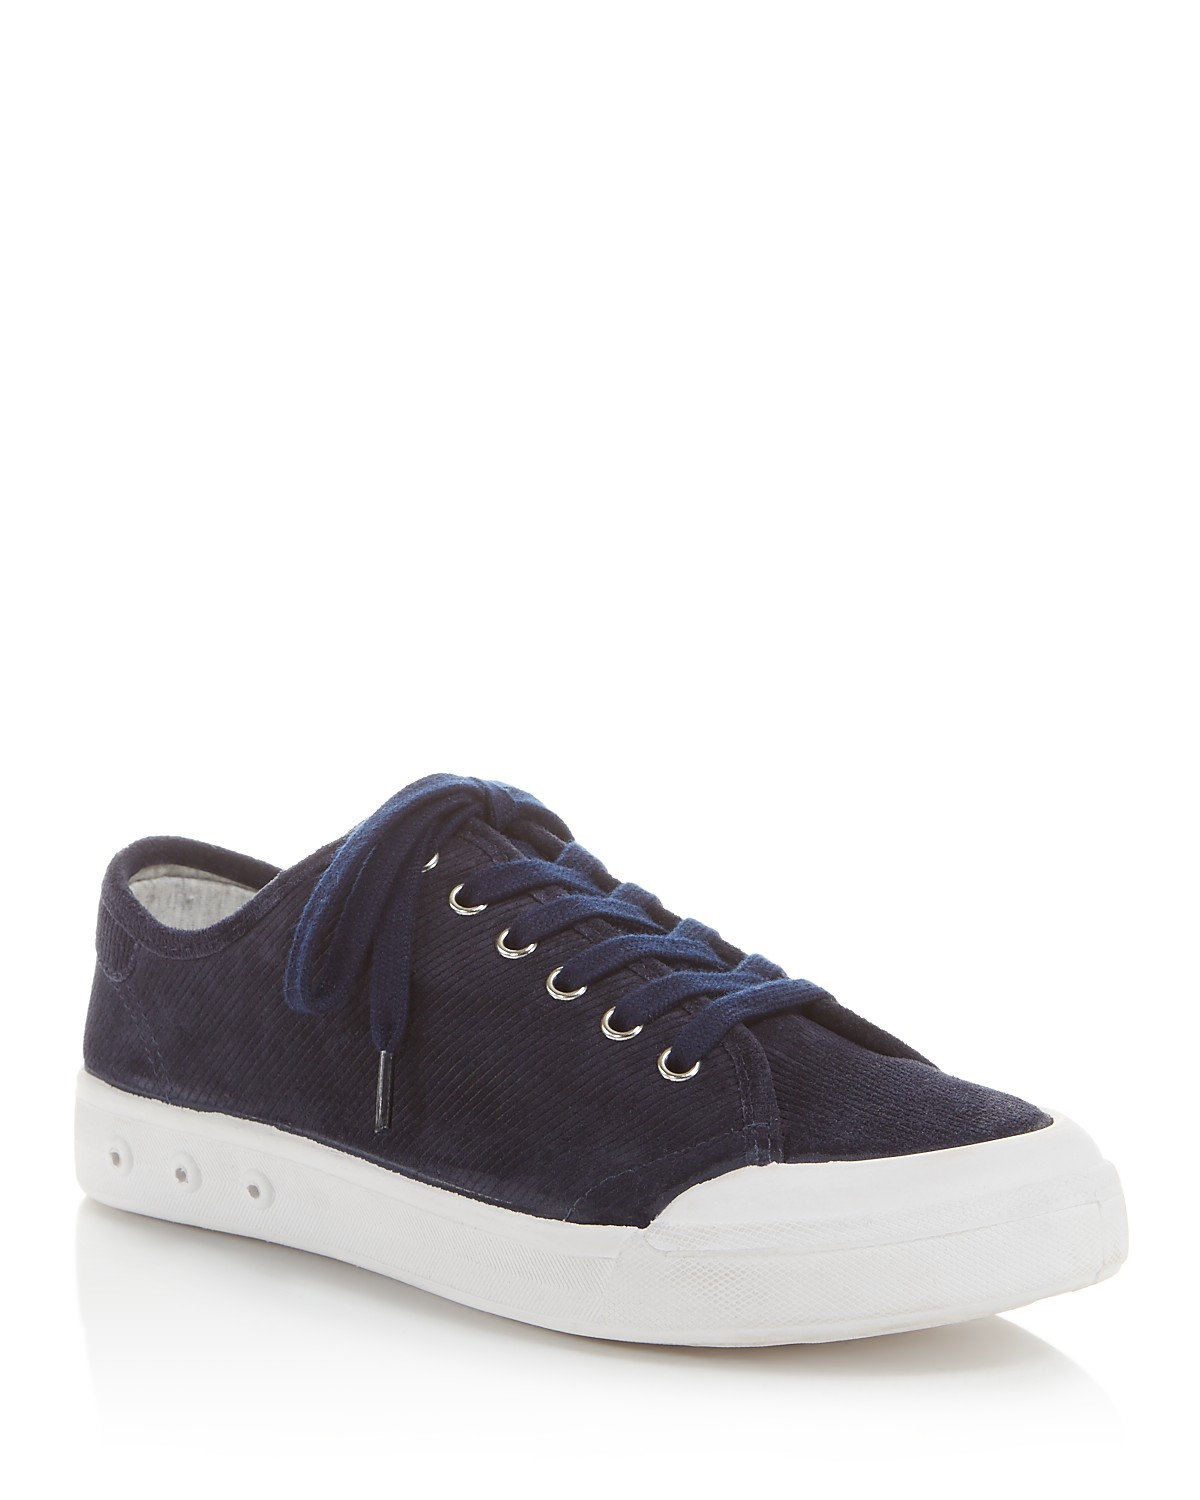 RAG&BONE Women's Standard Issue Corduroy Lace Up Sneakers - 100% Exclusive FwnIC